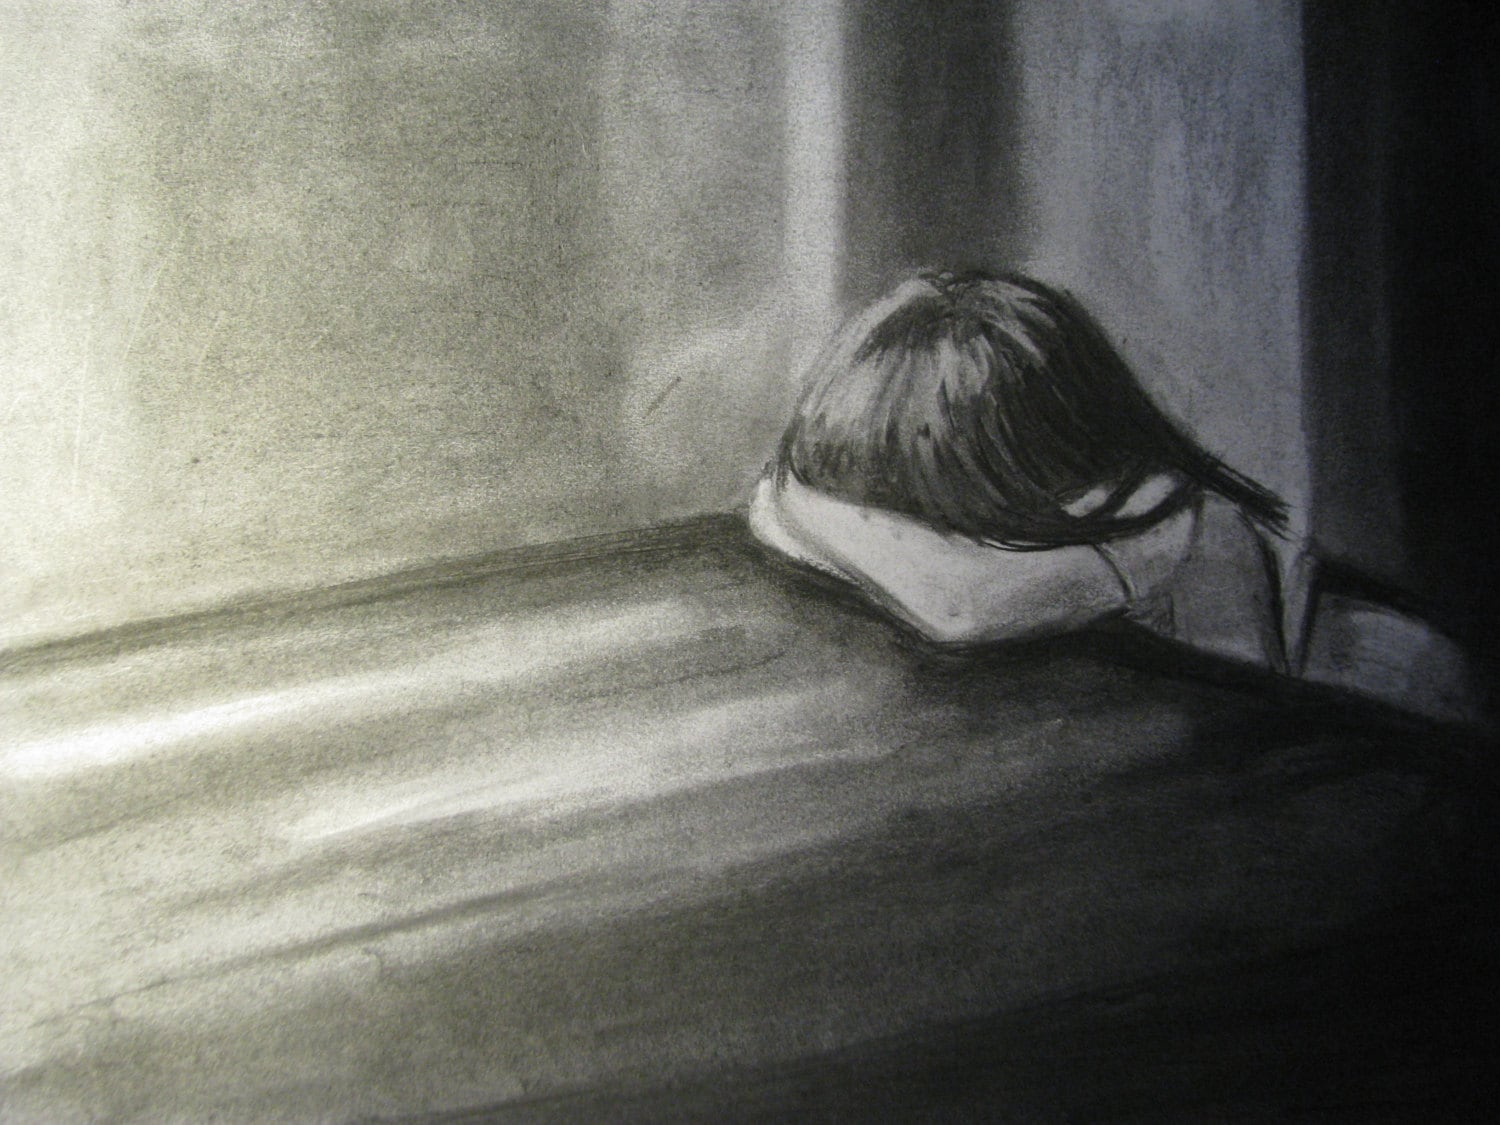 Pic of a girl crying